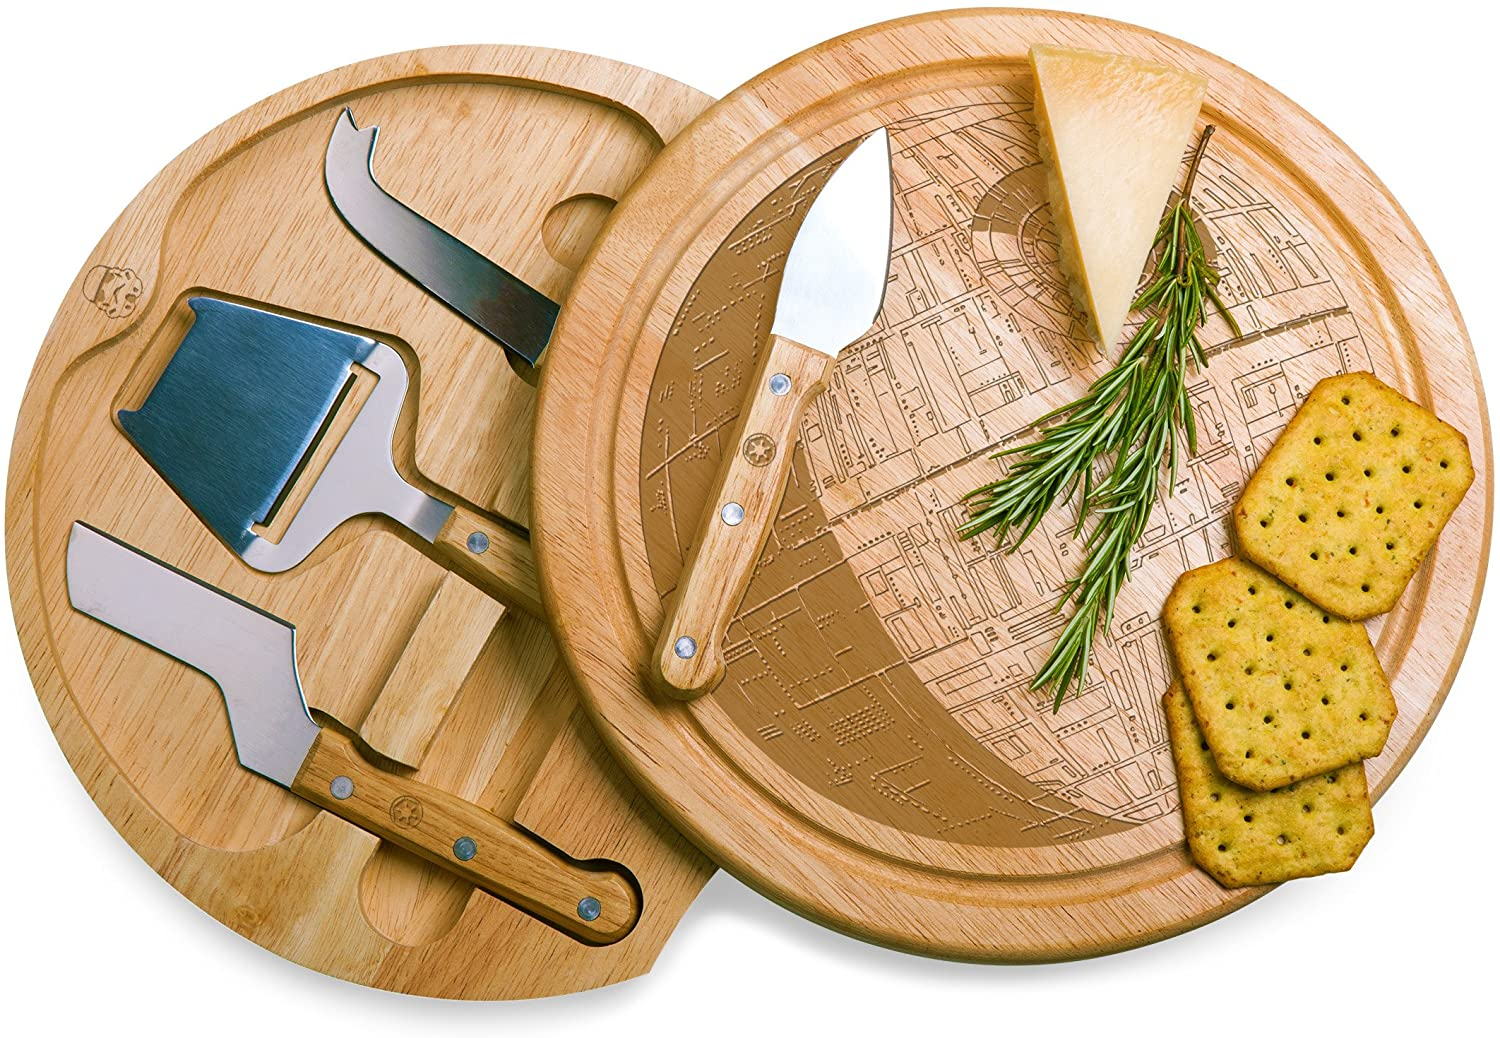 star-wars-gifts-cheese-board